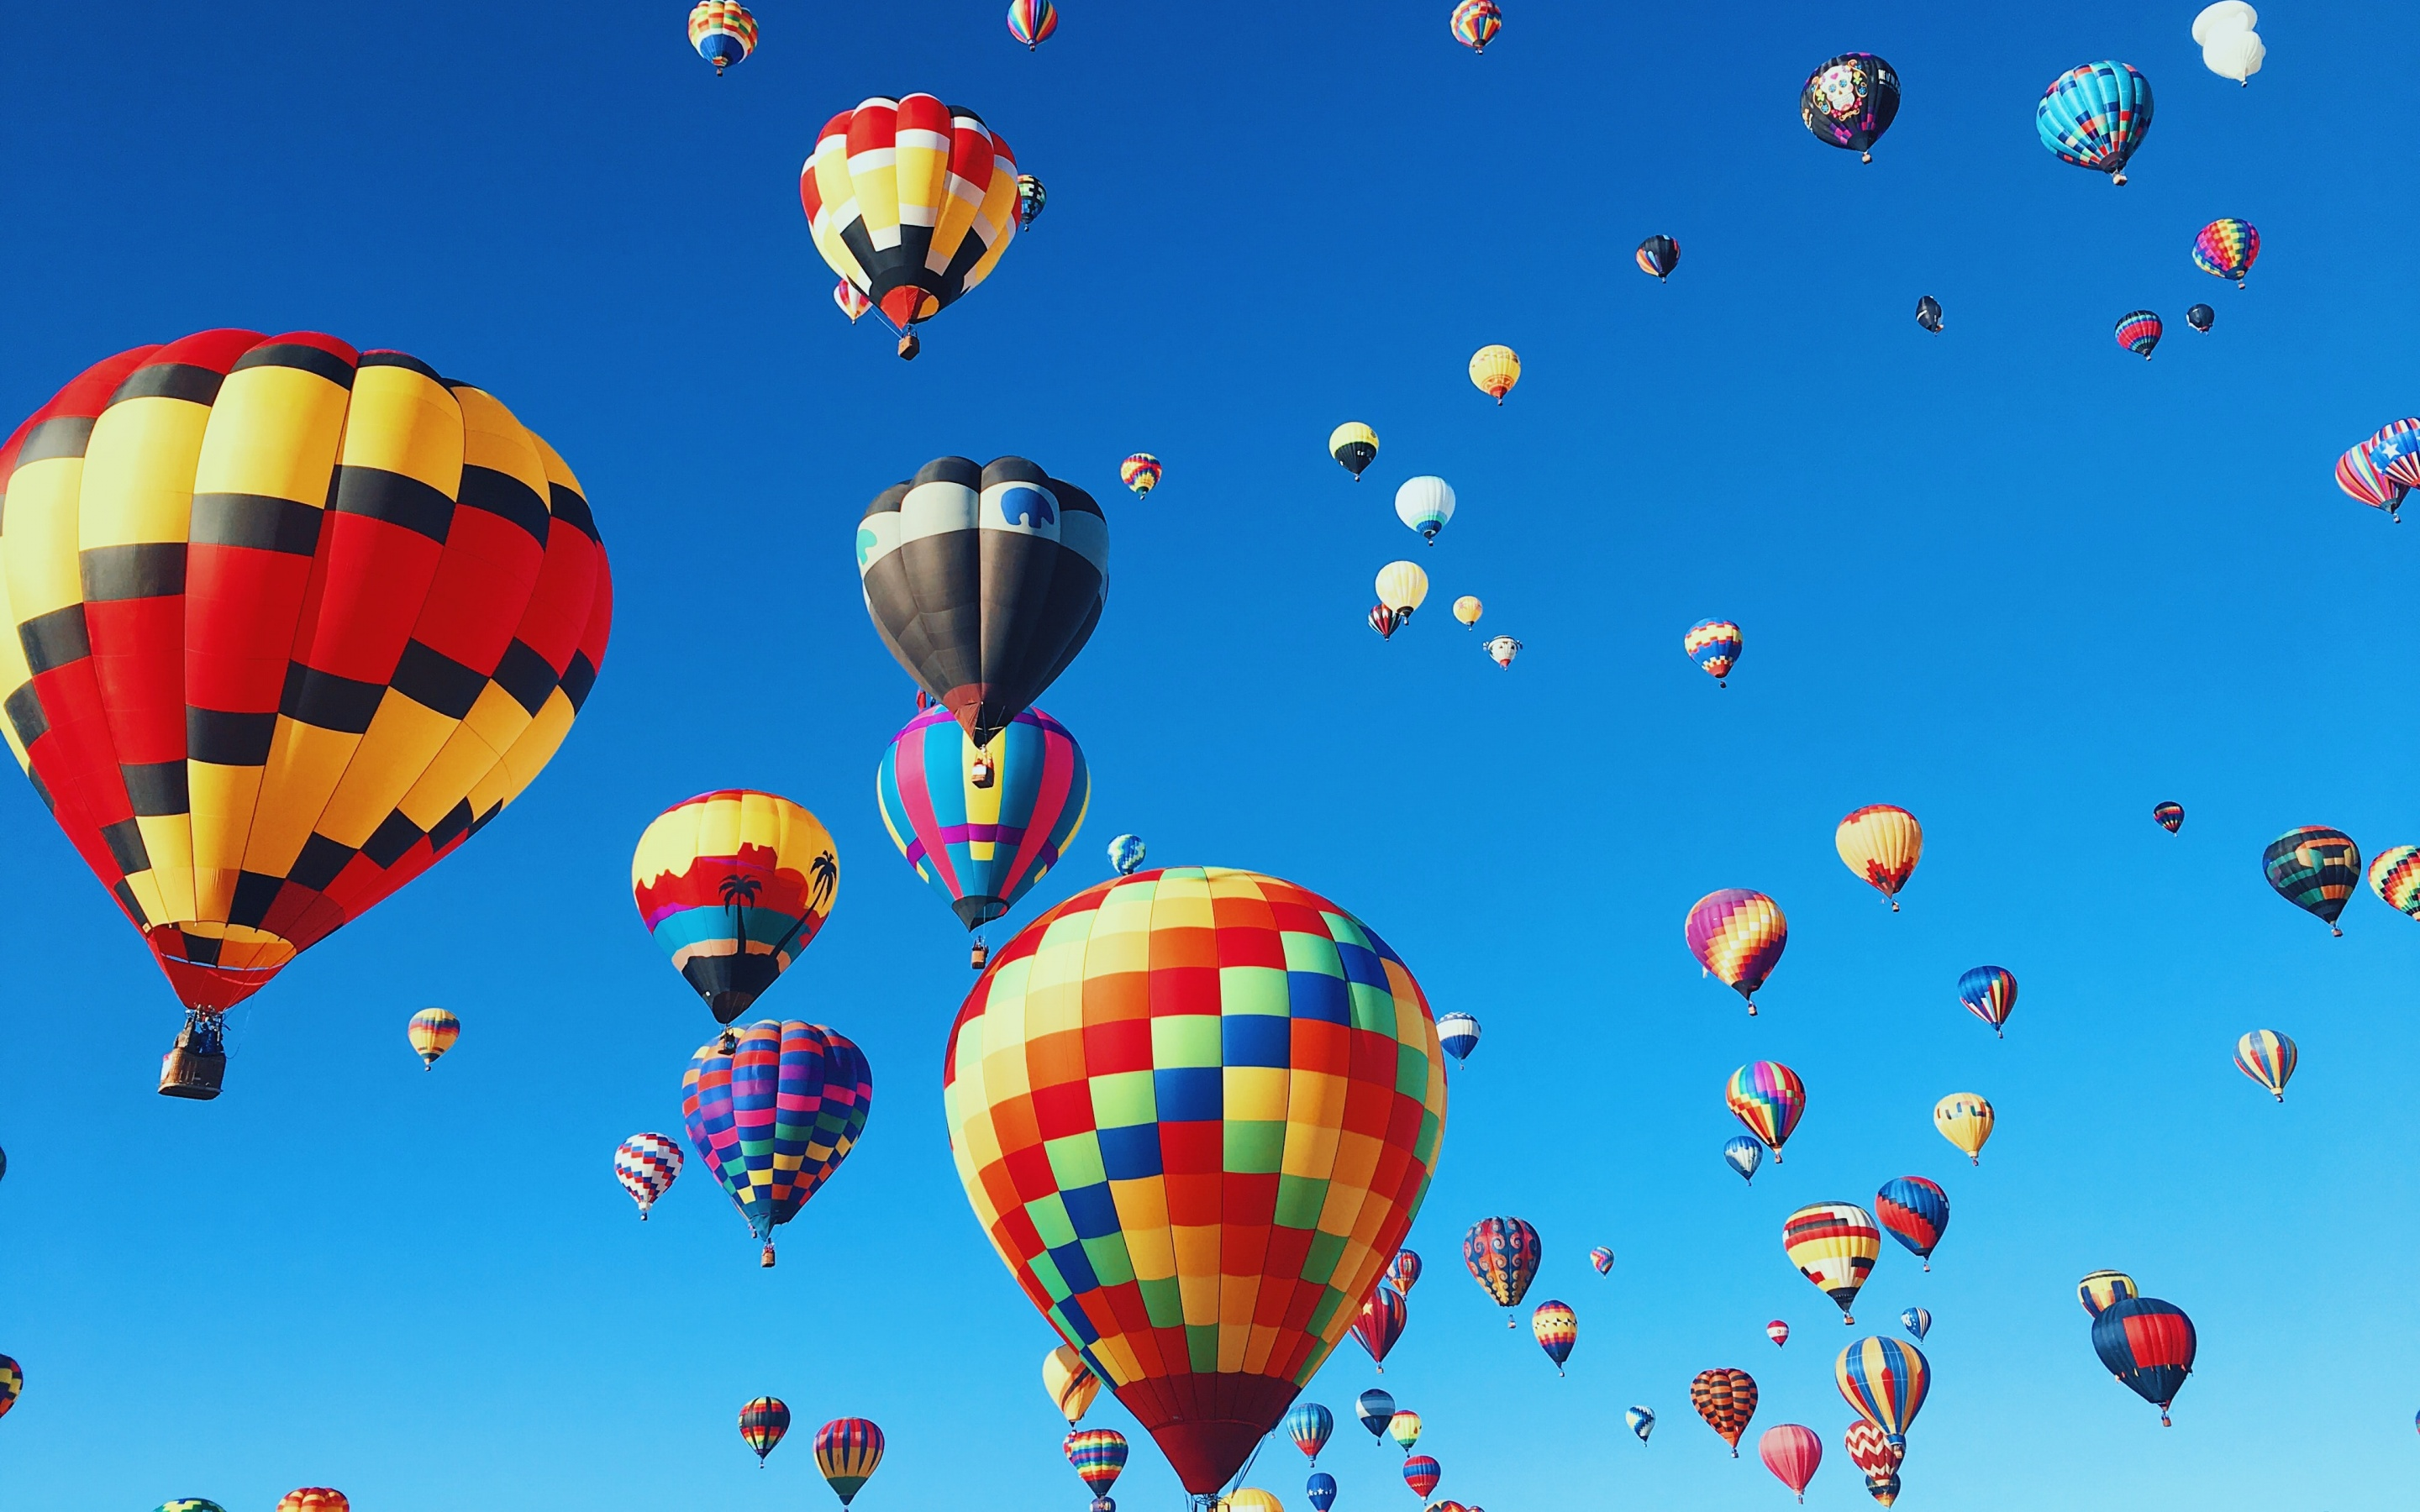 Hot Air Balloons Wallpaper 4k Festival Colorful Blue Sky Aesthetic Photography 1117